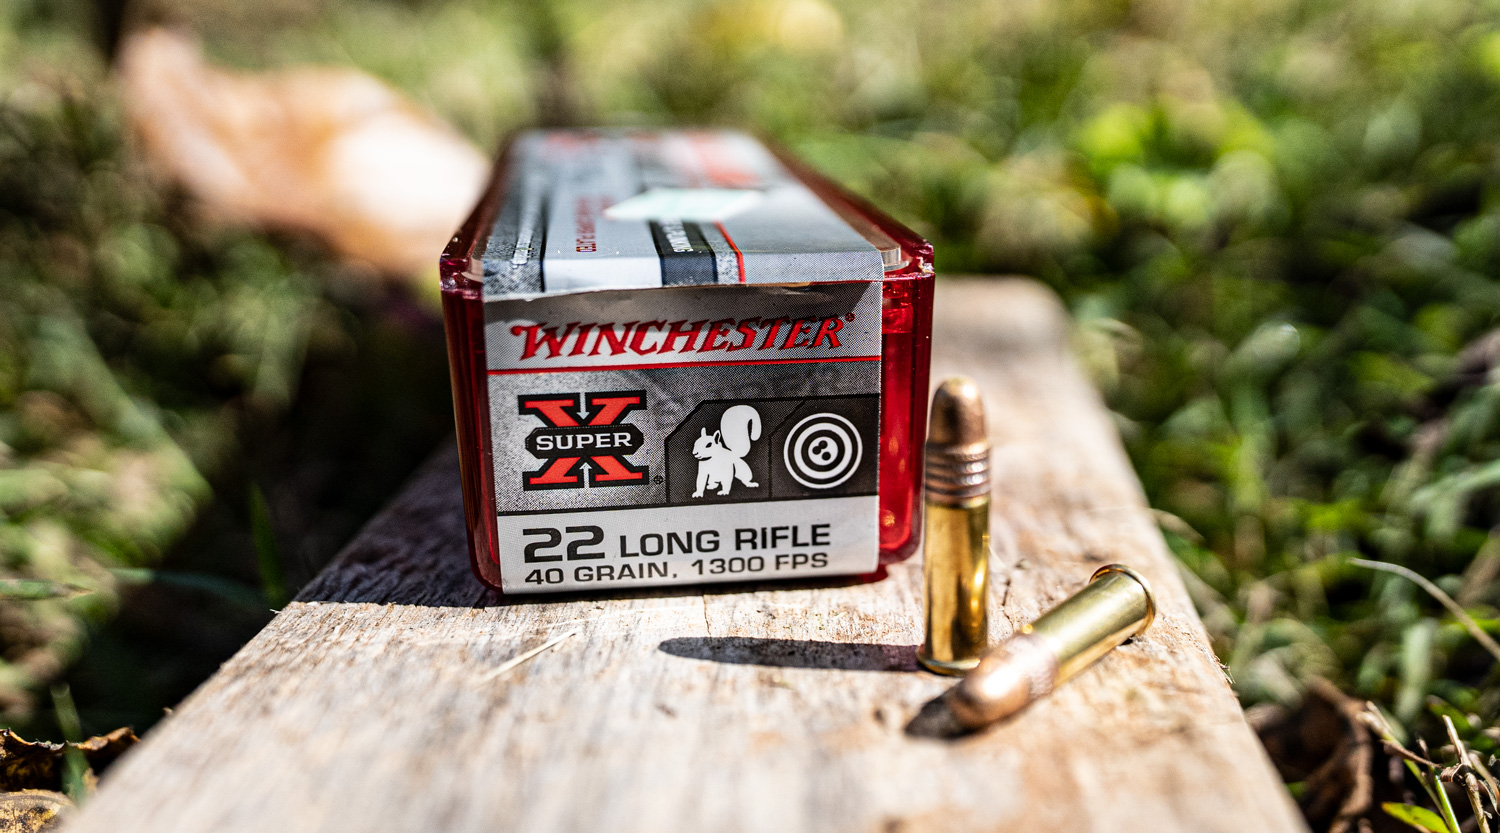 Winchester Super-X 22 LR ammo for hunting